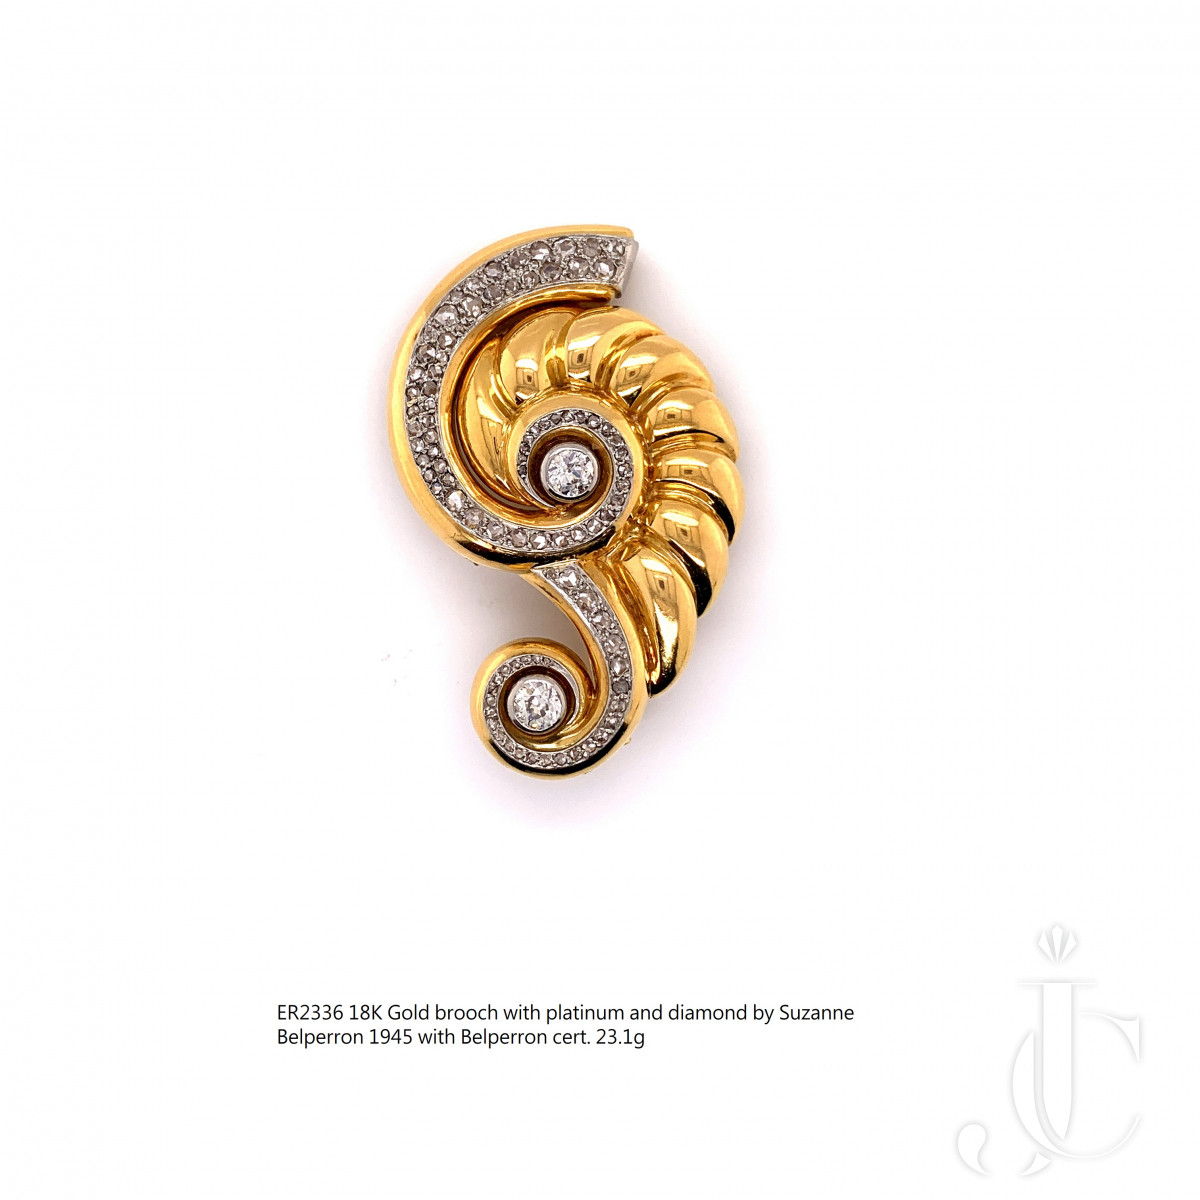 18K Gold brooch with platinum and diamond by Suzanne Belperron